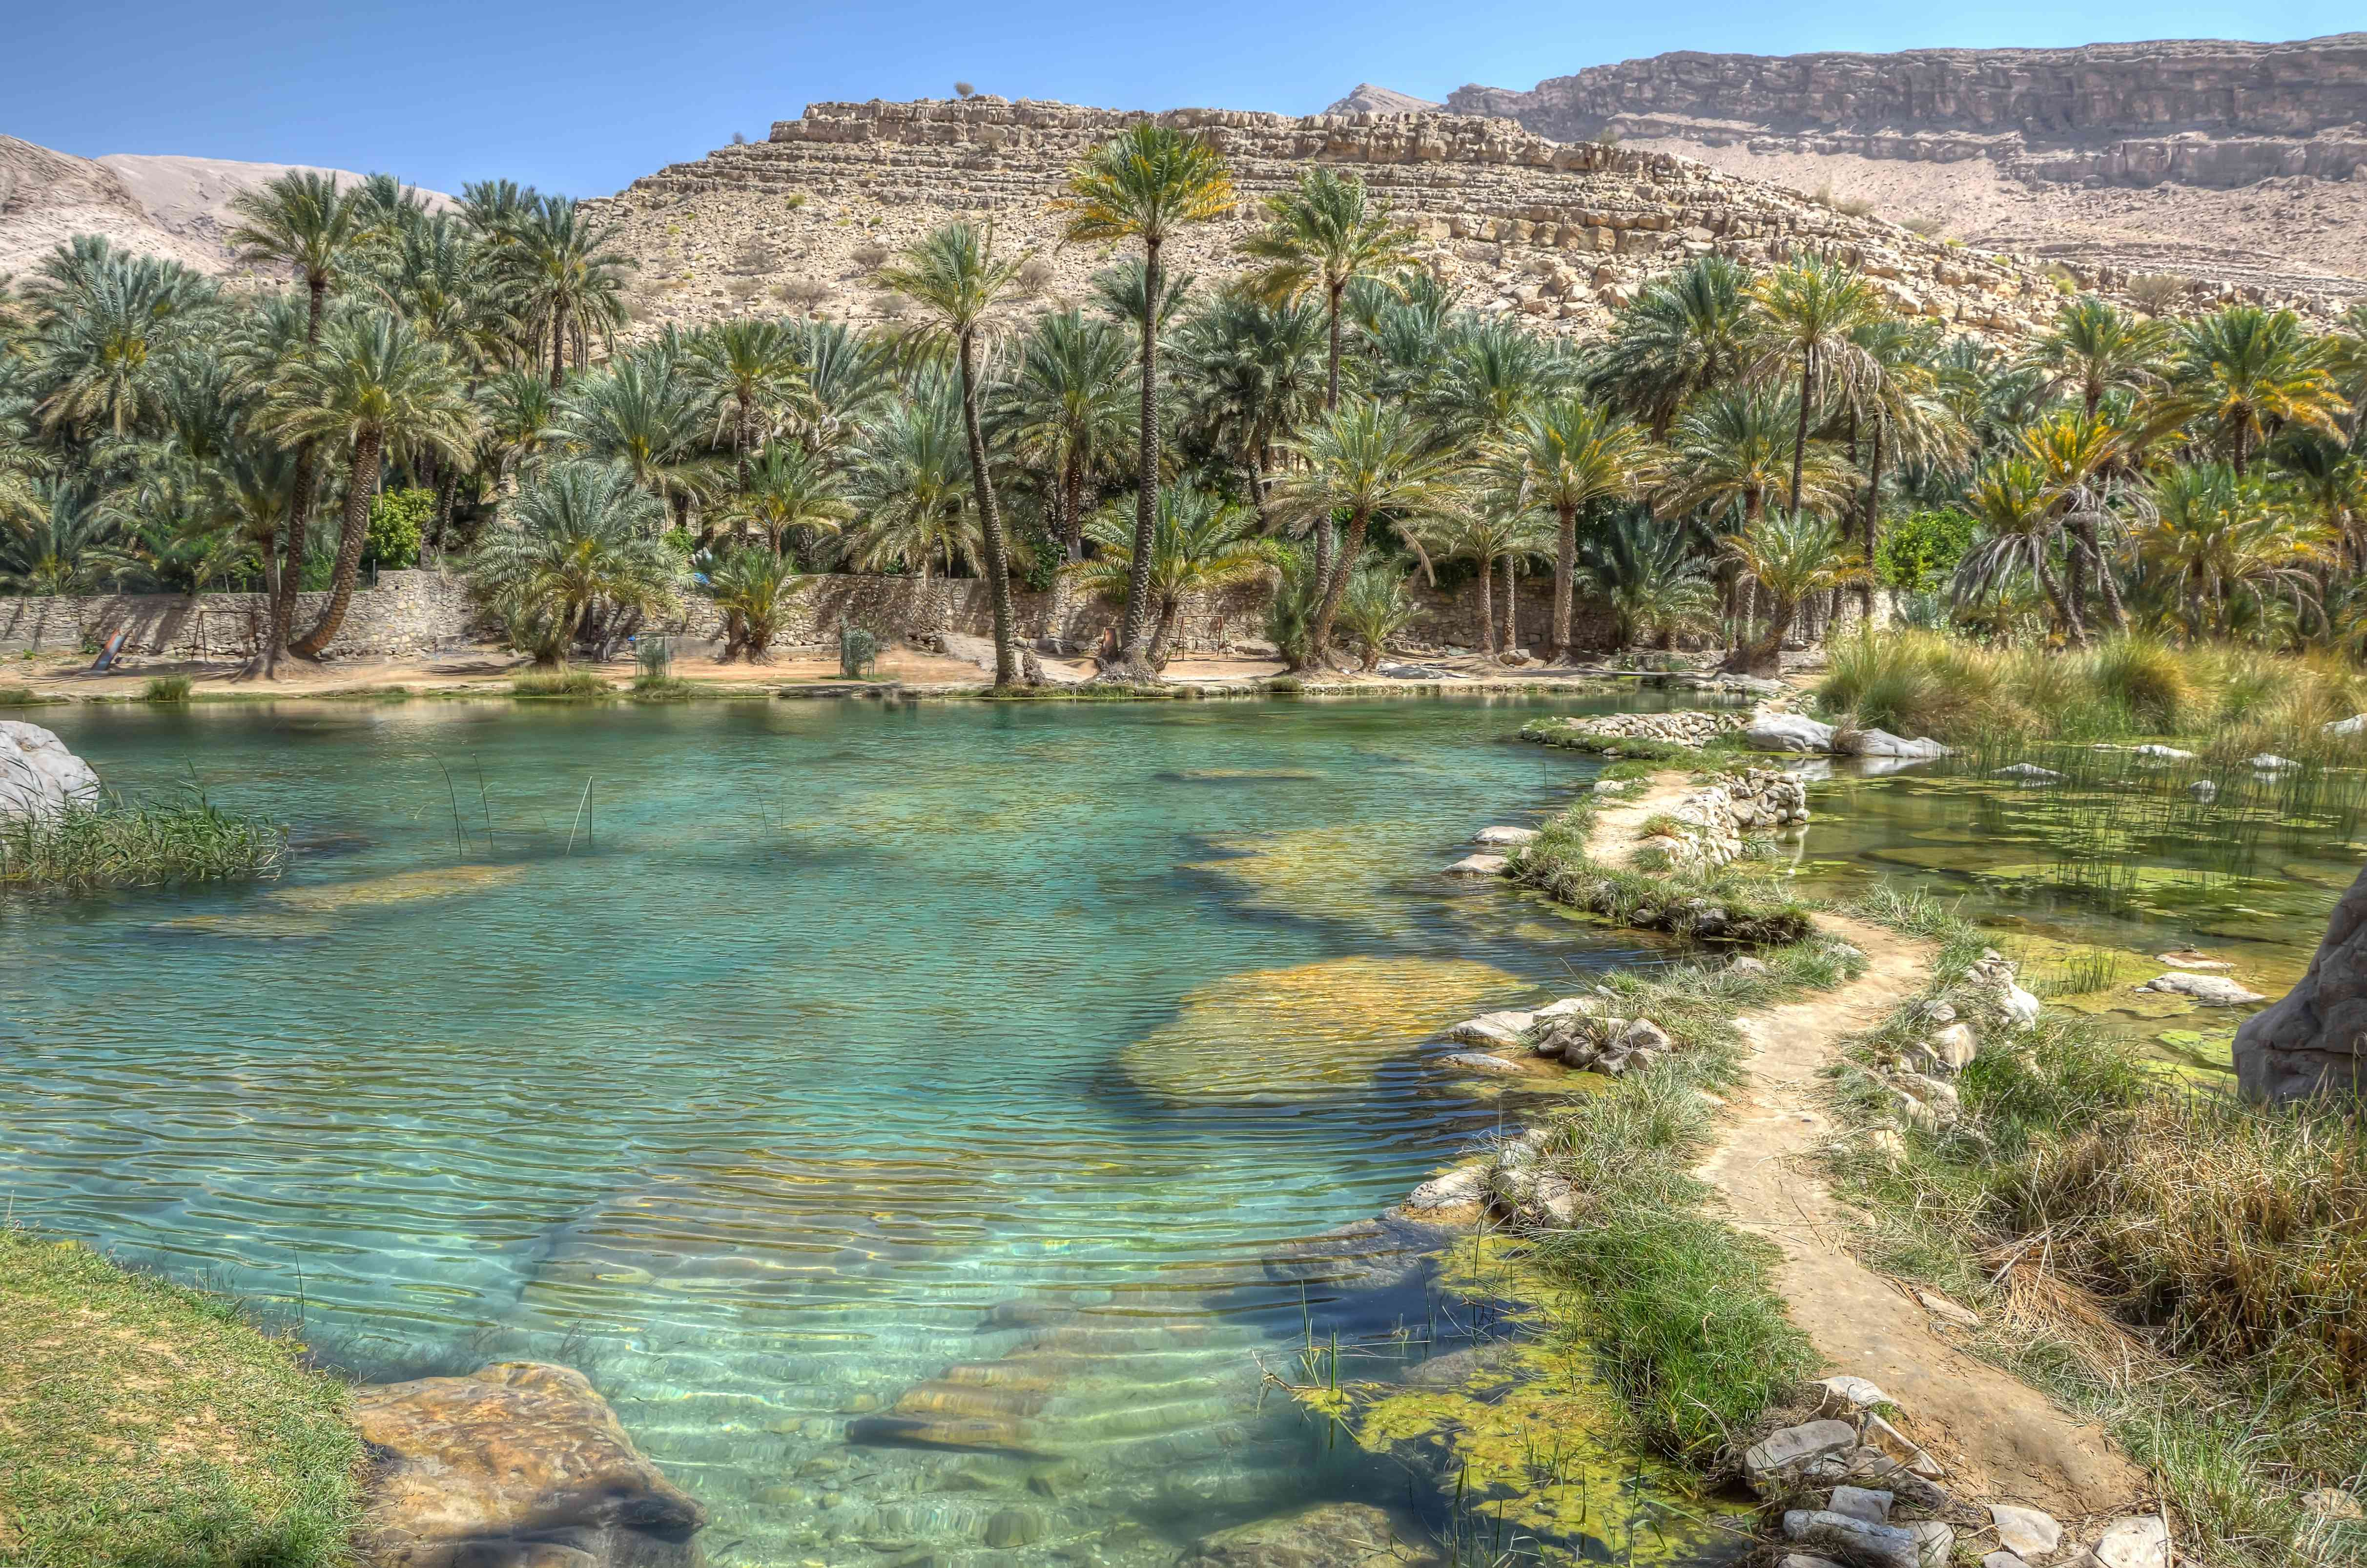 clear blue waters of Wadi Bani Khalid in the valley of Oman, surrounded by palm trees with desert beyond